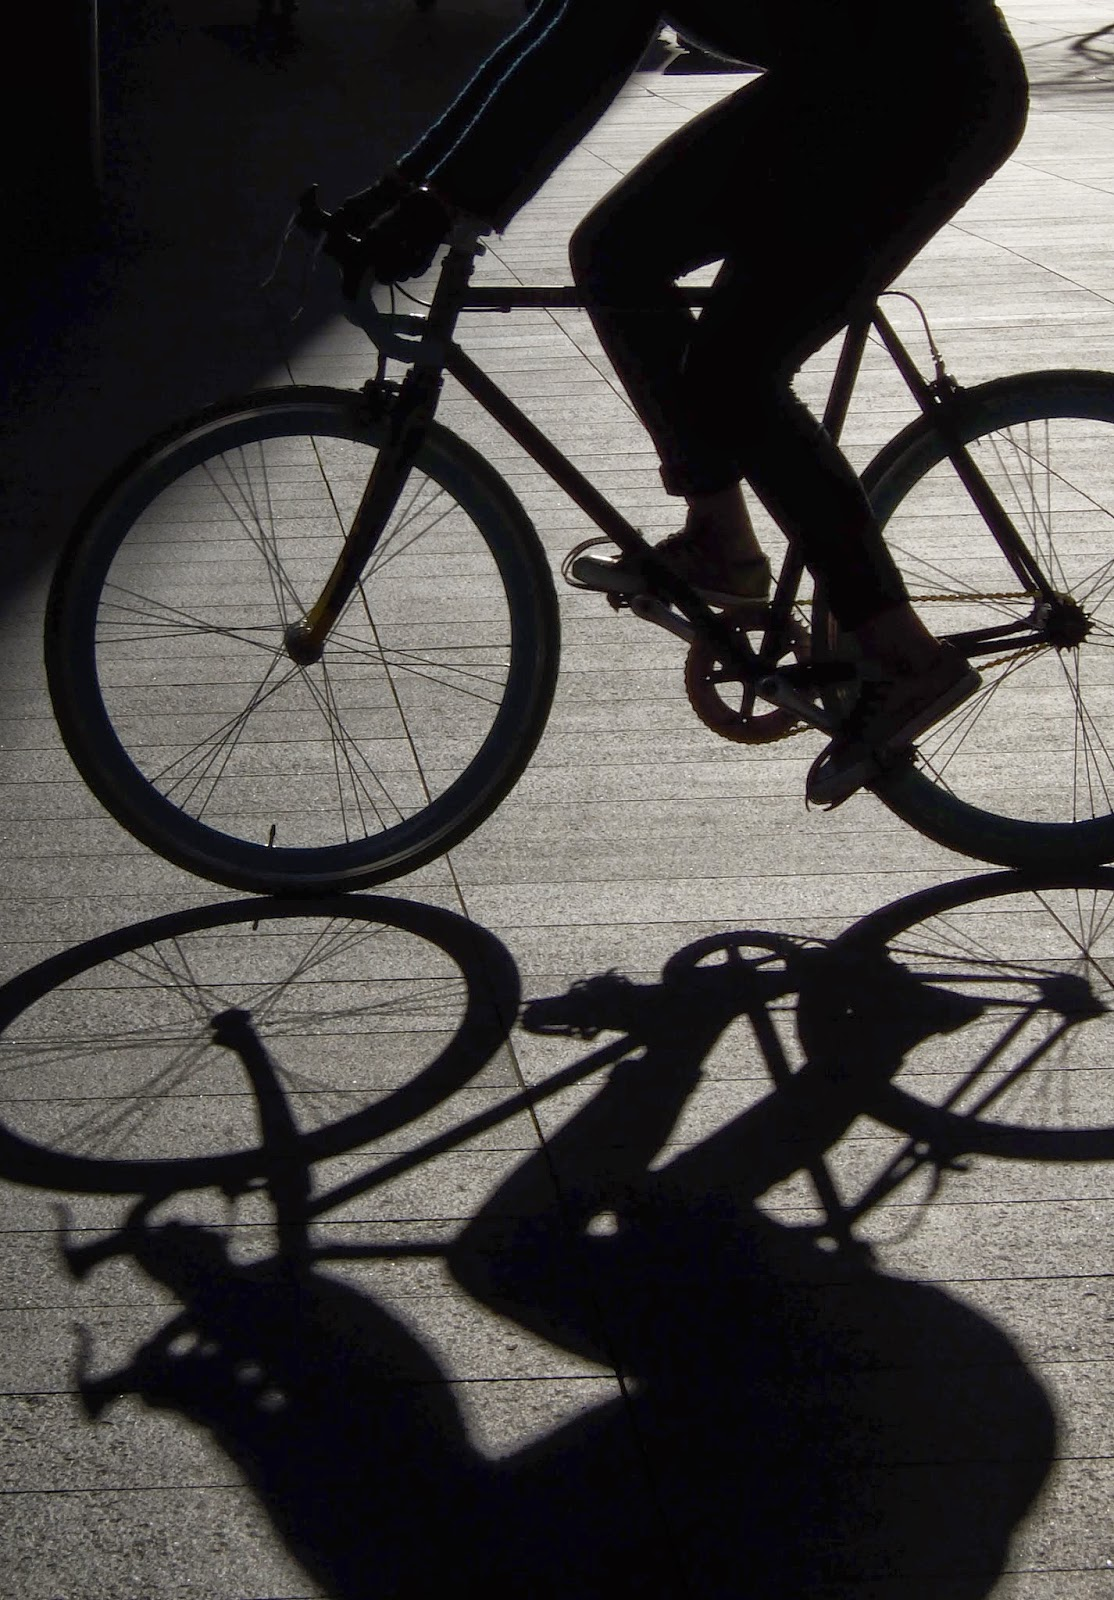 Bicycle, Cyclist, Shadow, City